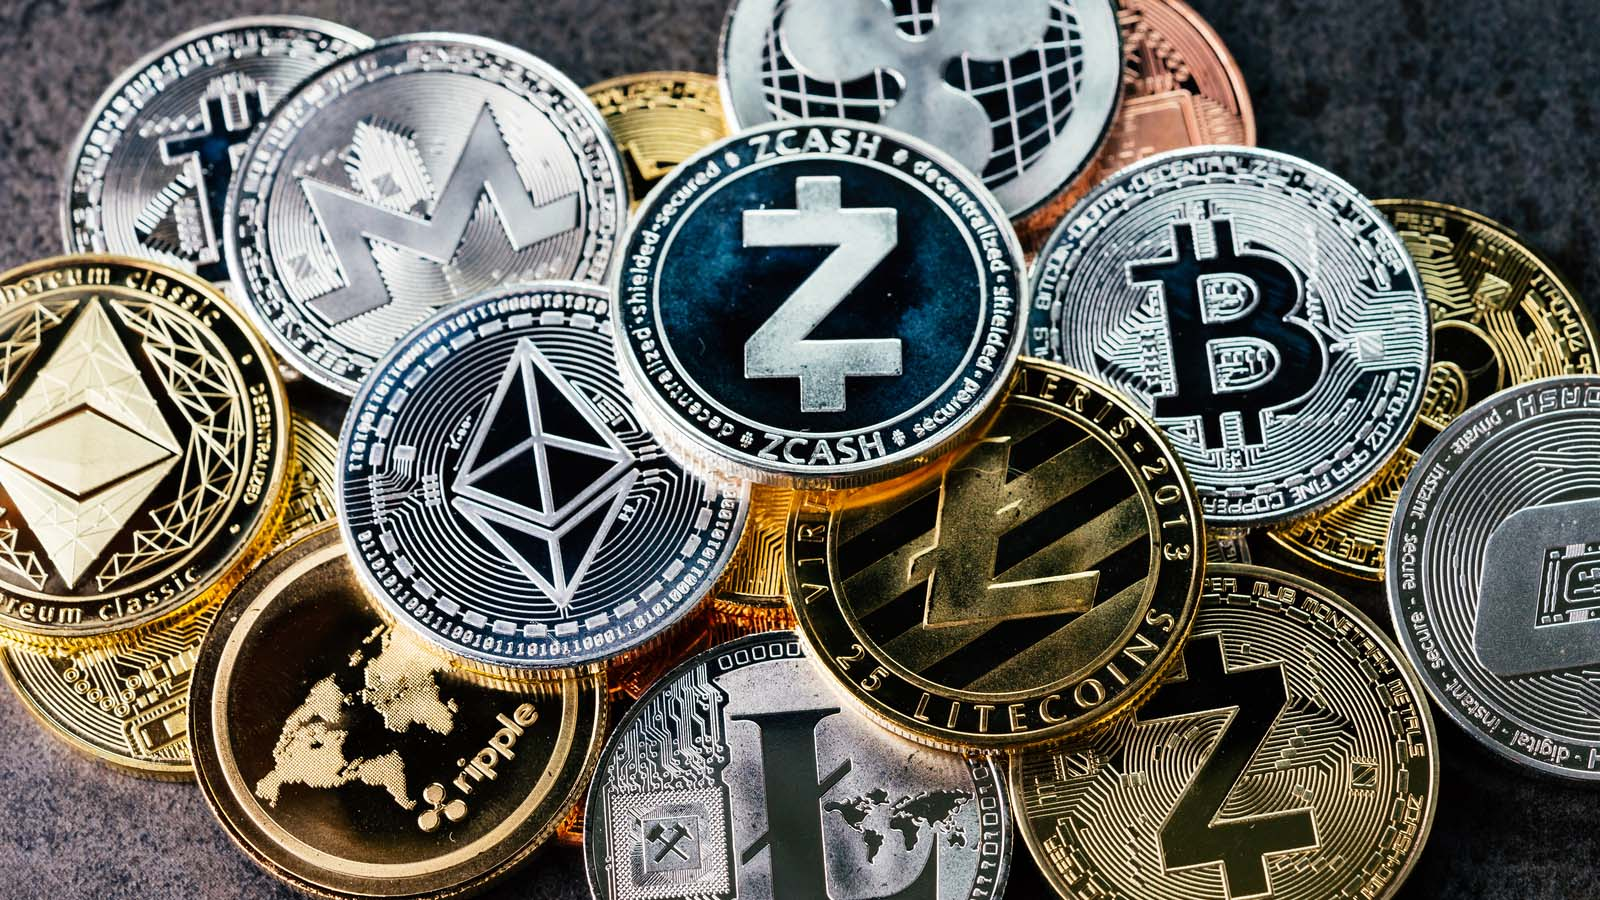 7 Altcoins Primed for a June Rally